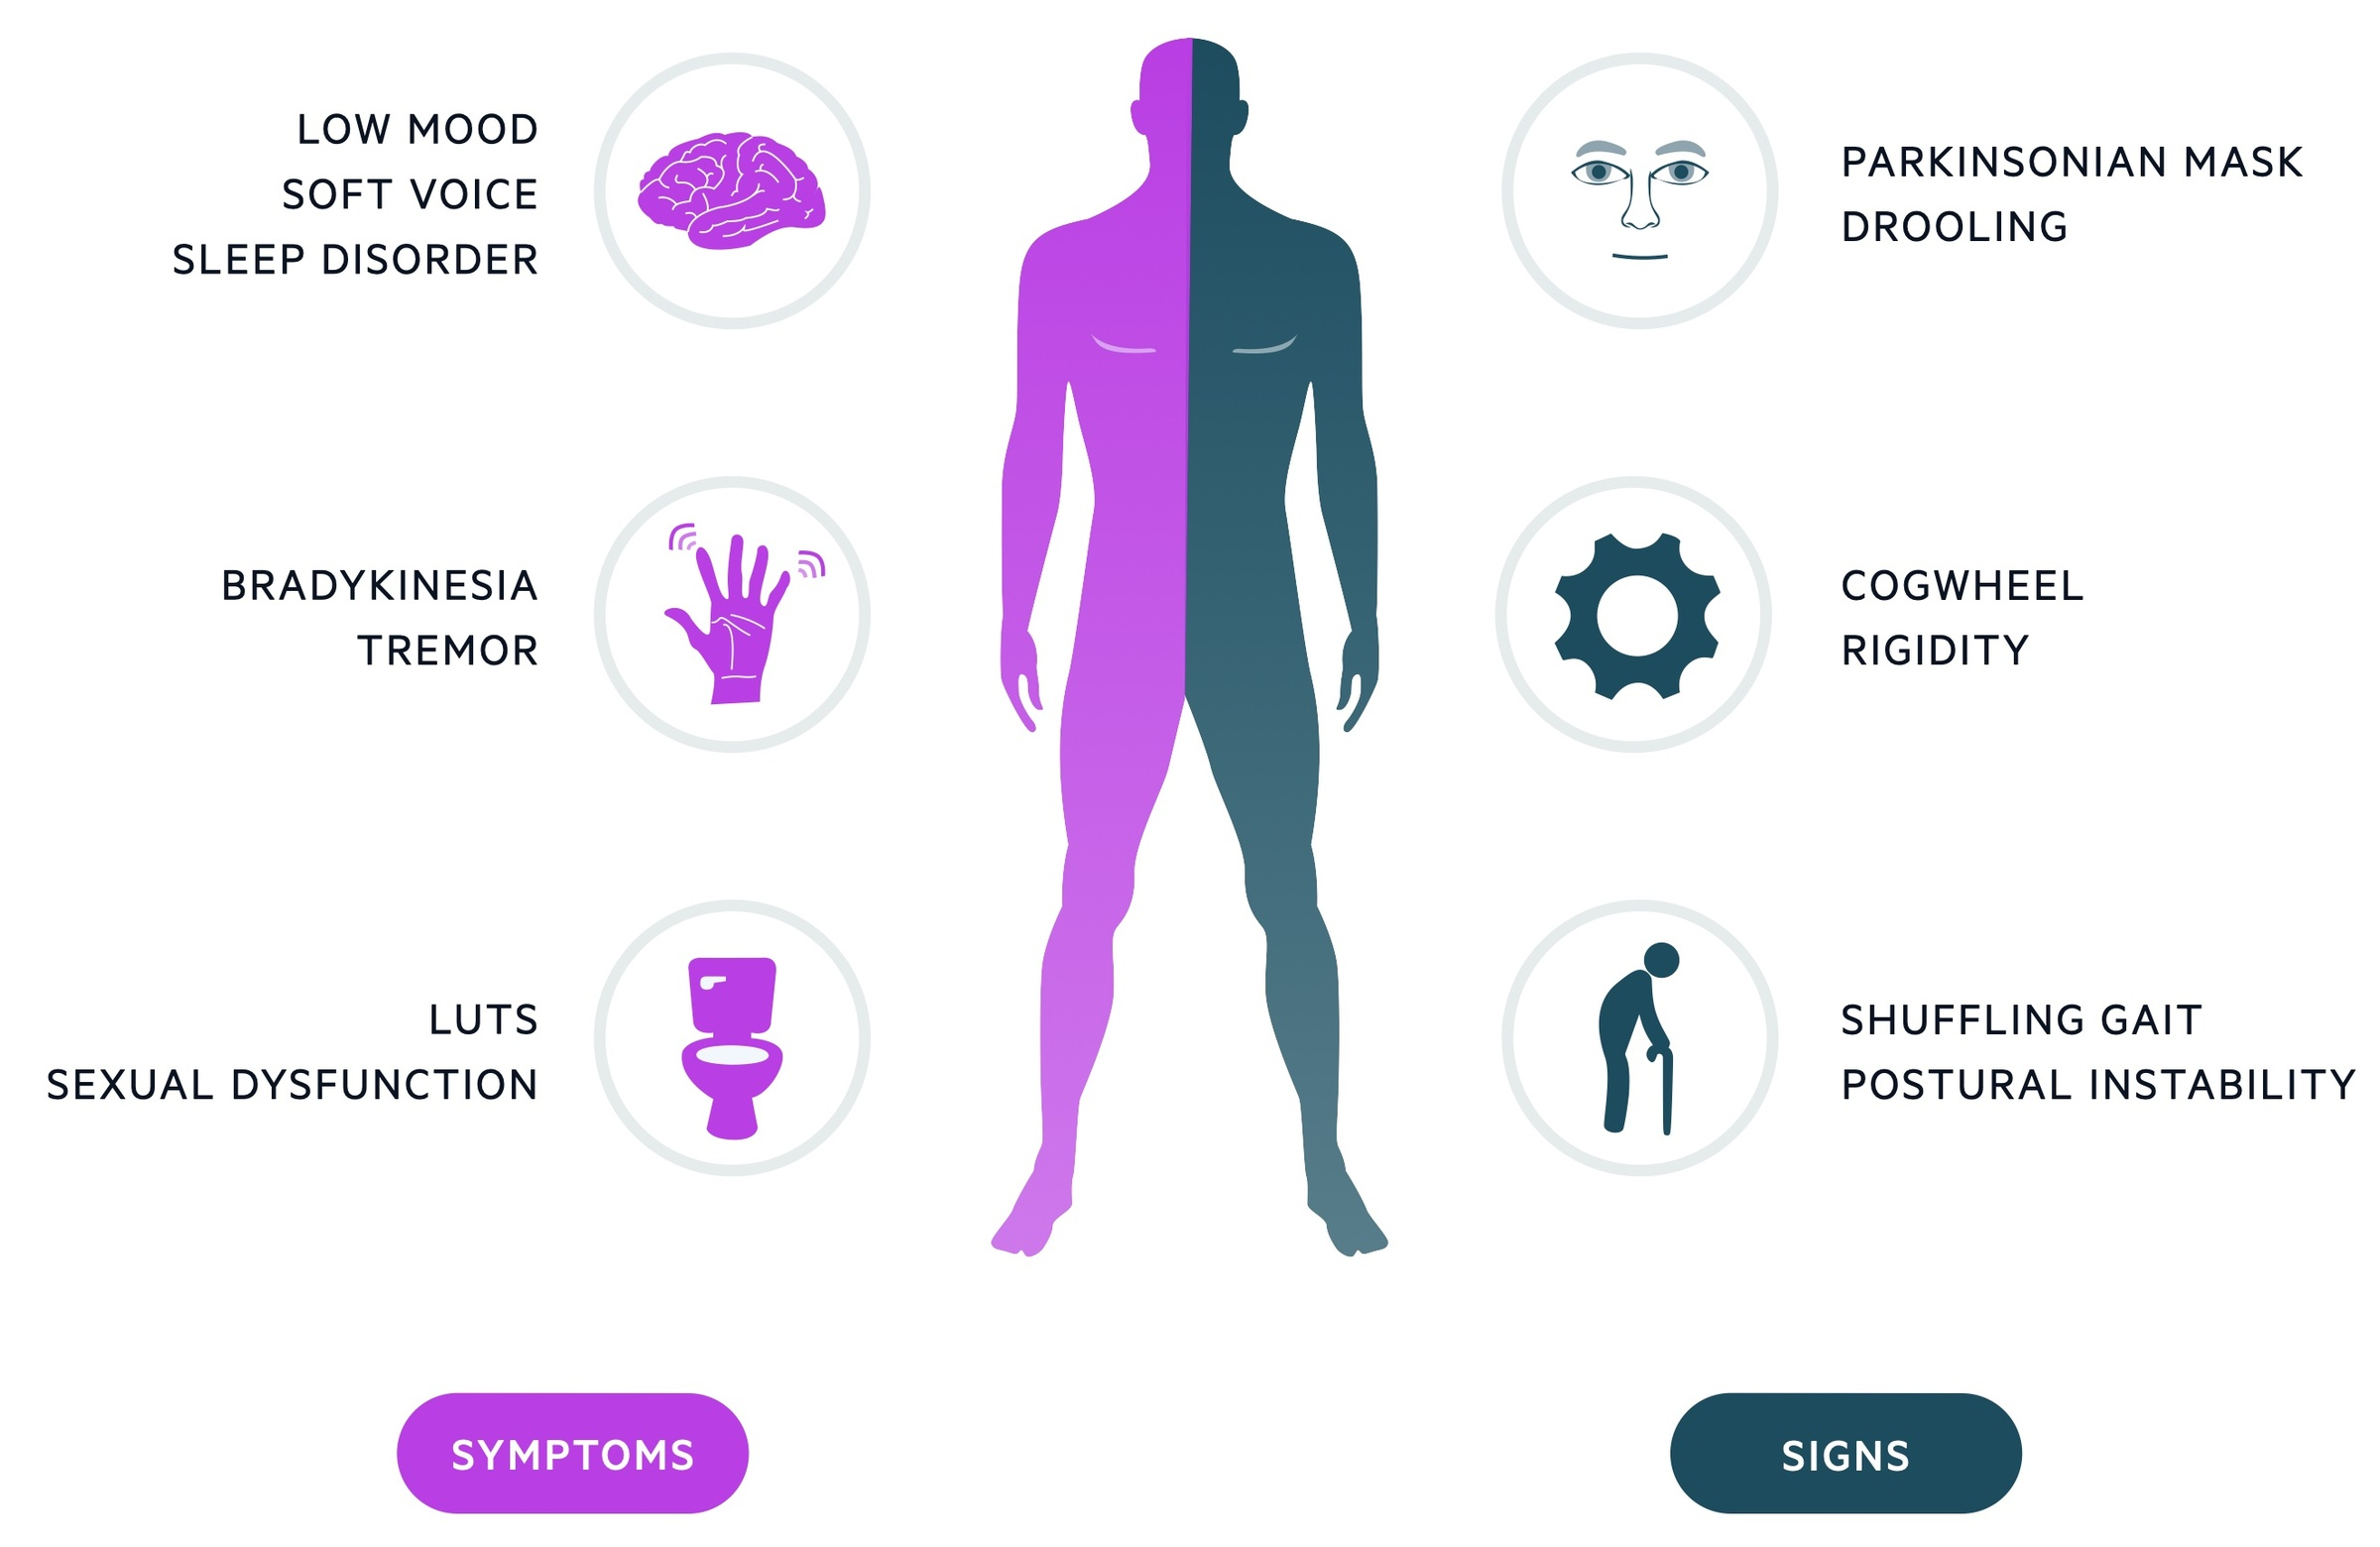 Clinical features of parkinsons disease